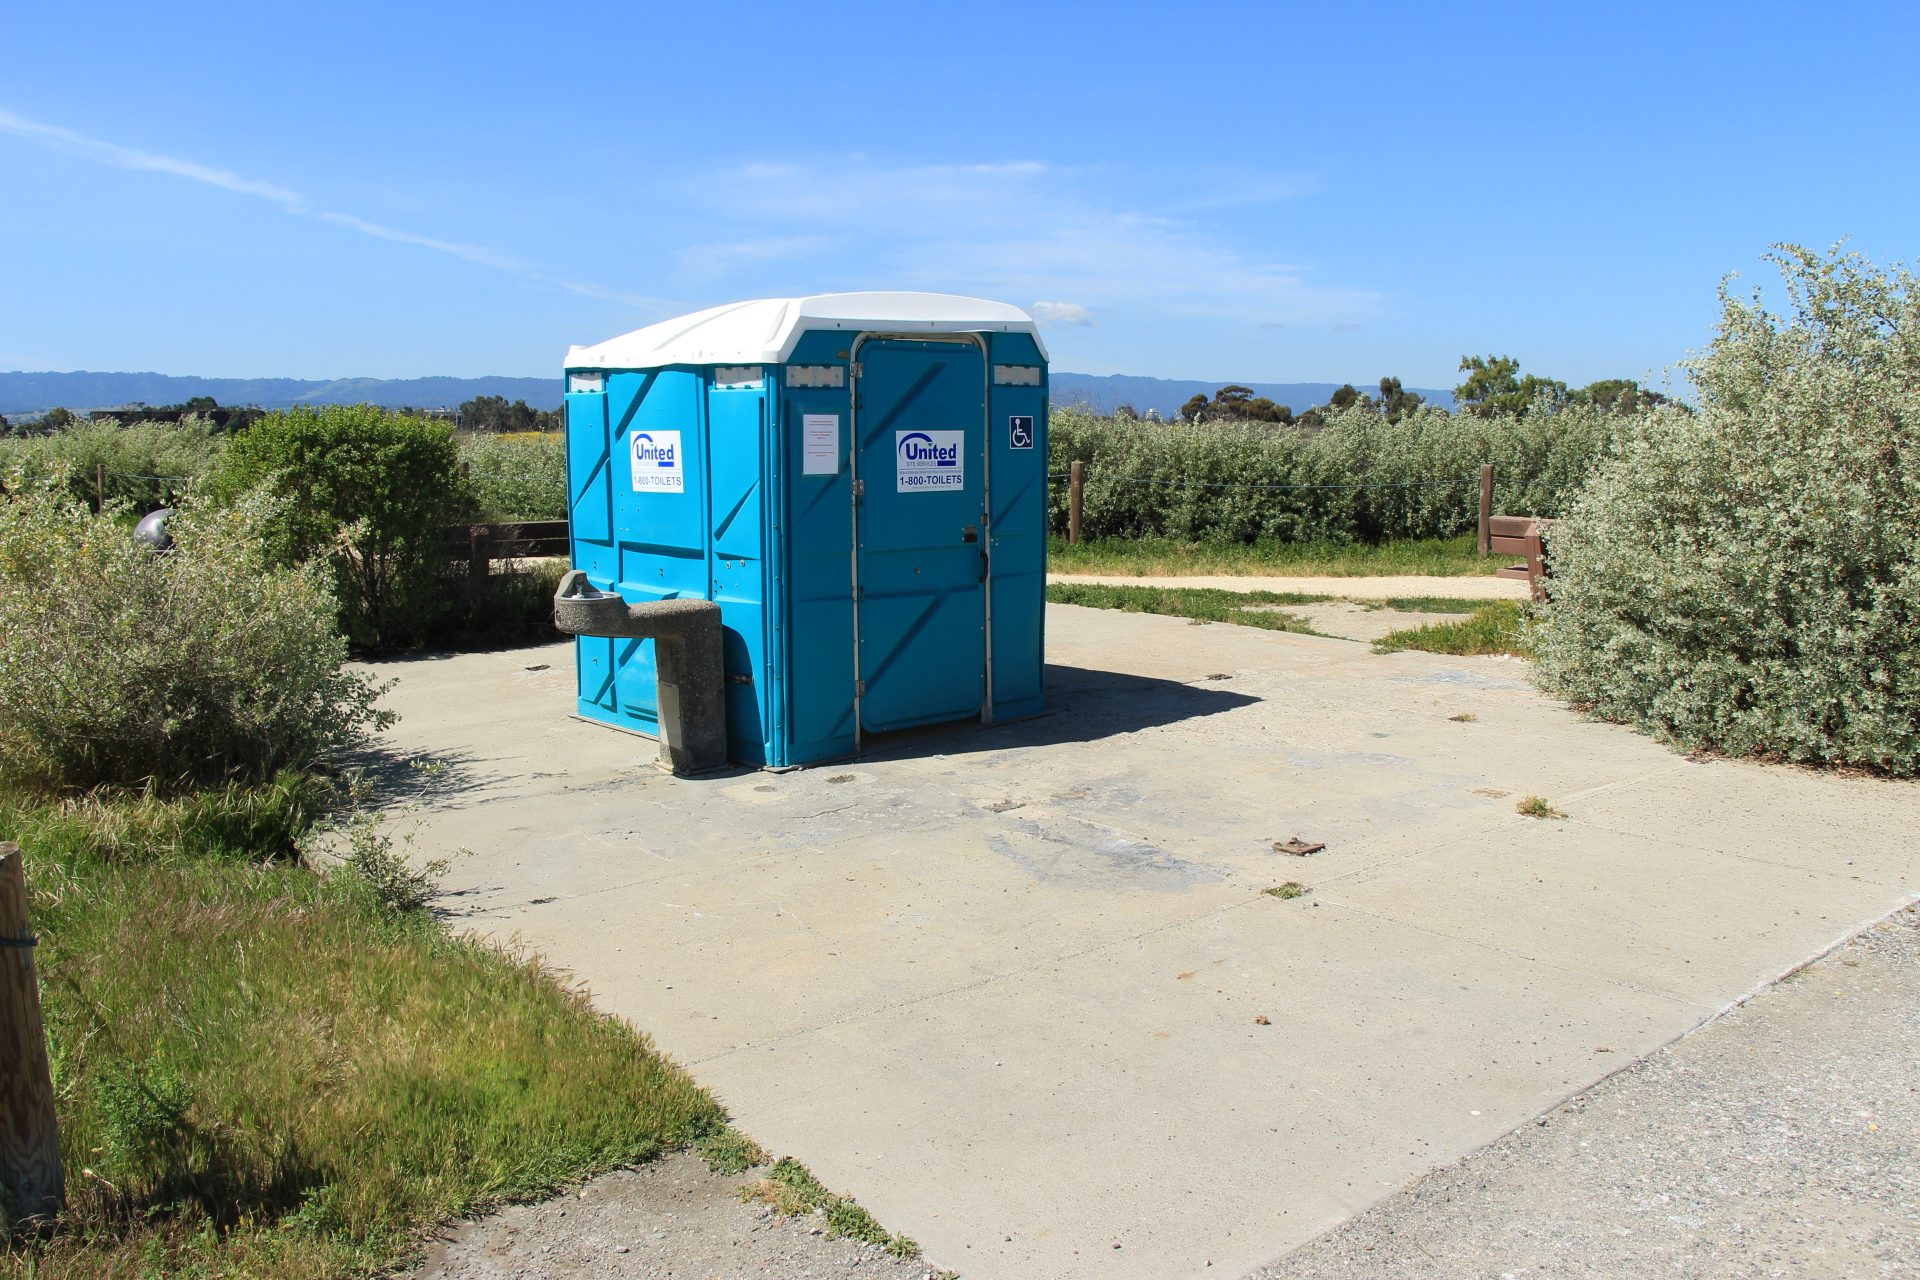 Accessible portable toilet, with drinking fountain next to it